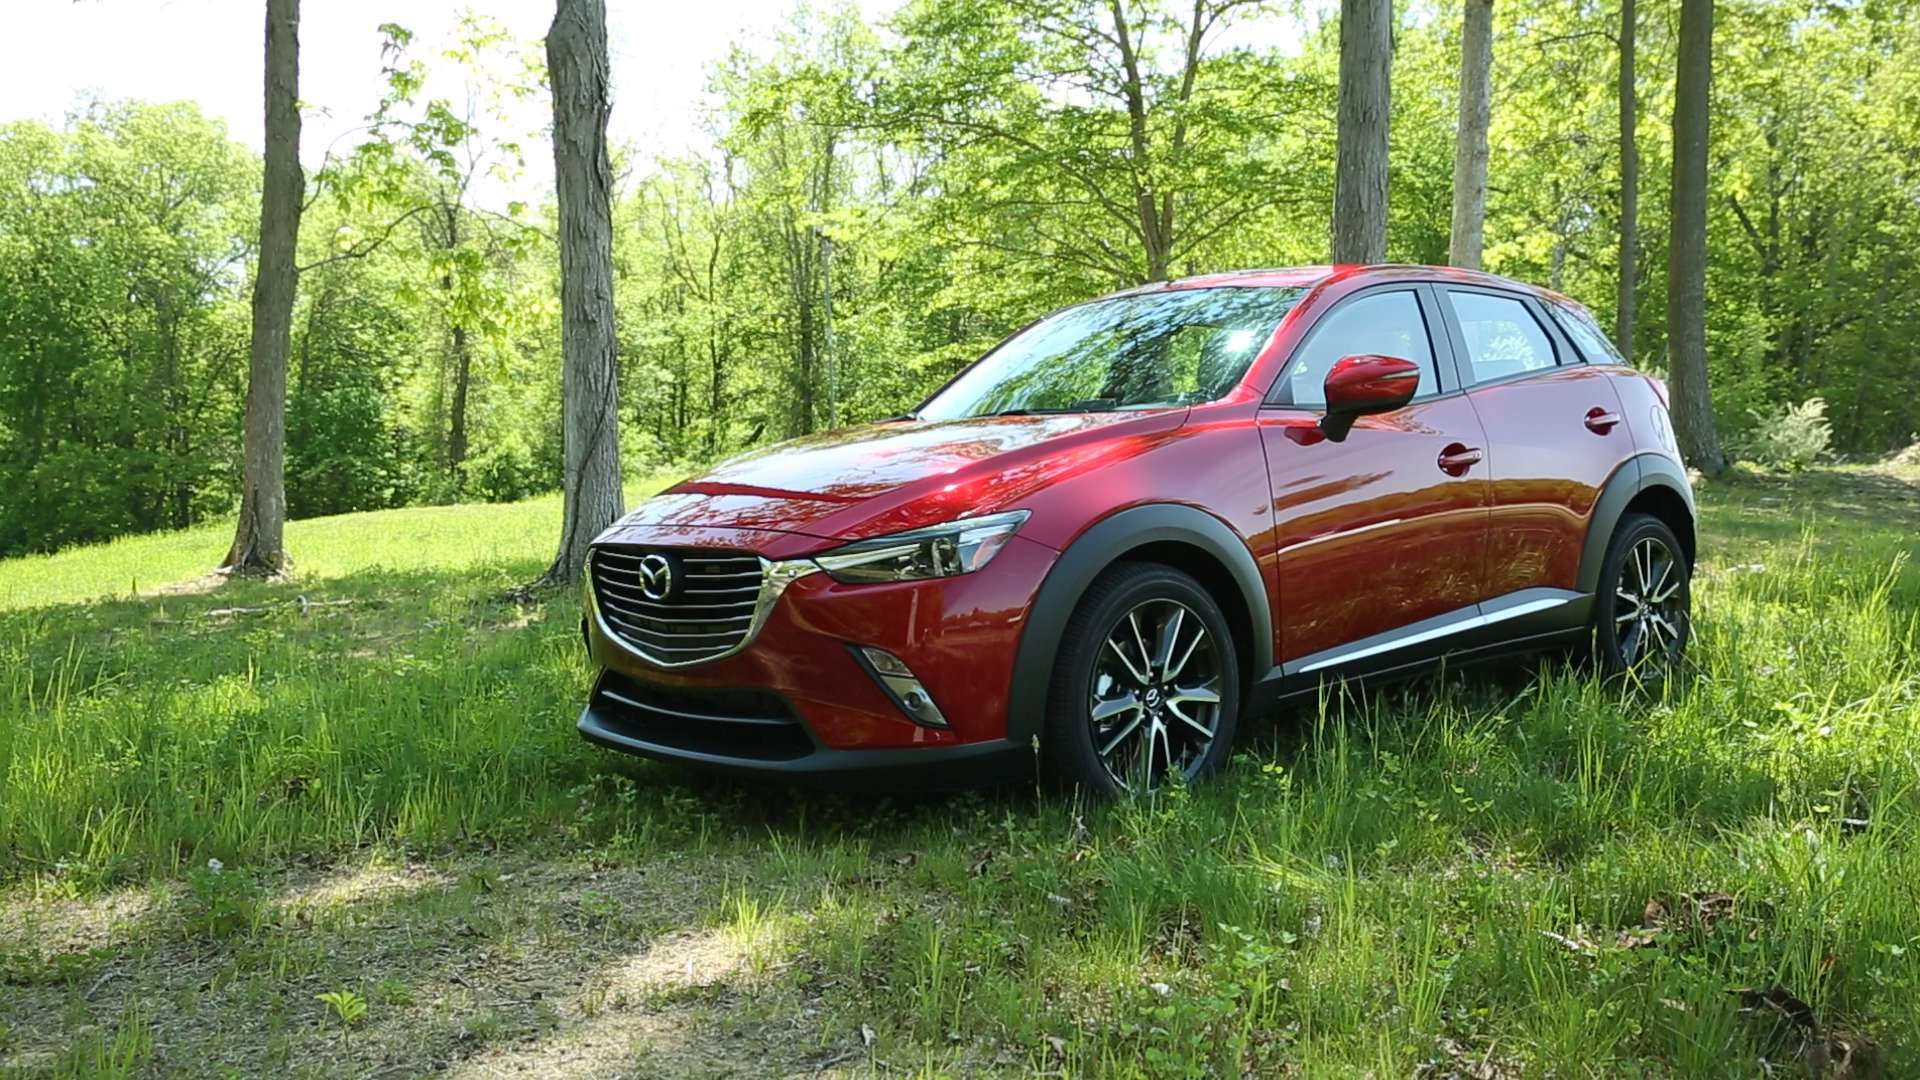 Mazda CX-3 Widescreen for desktop